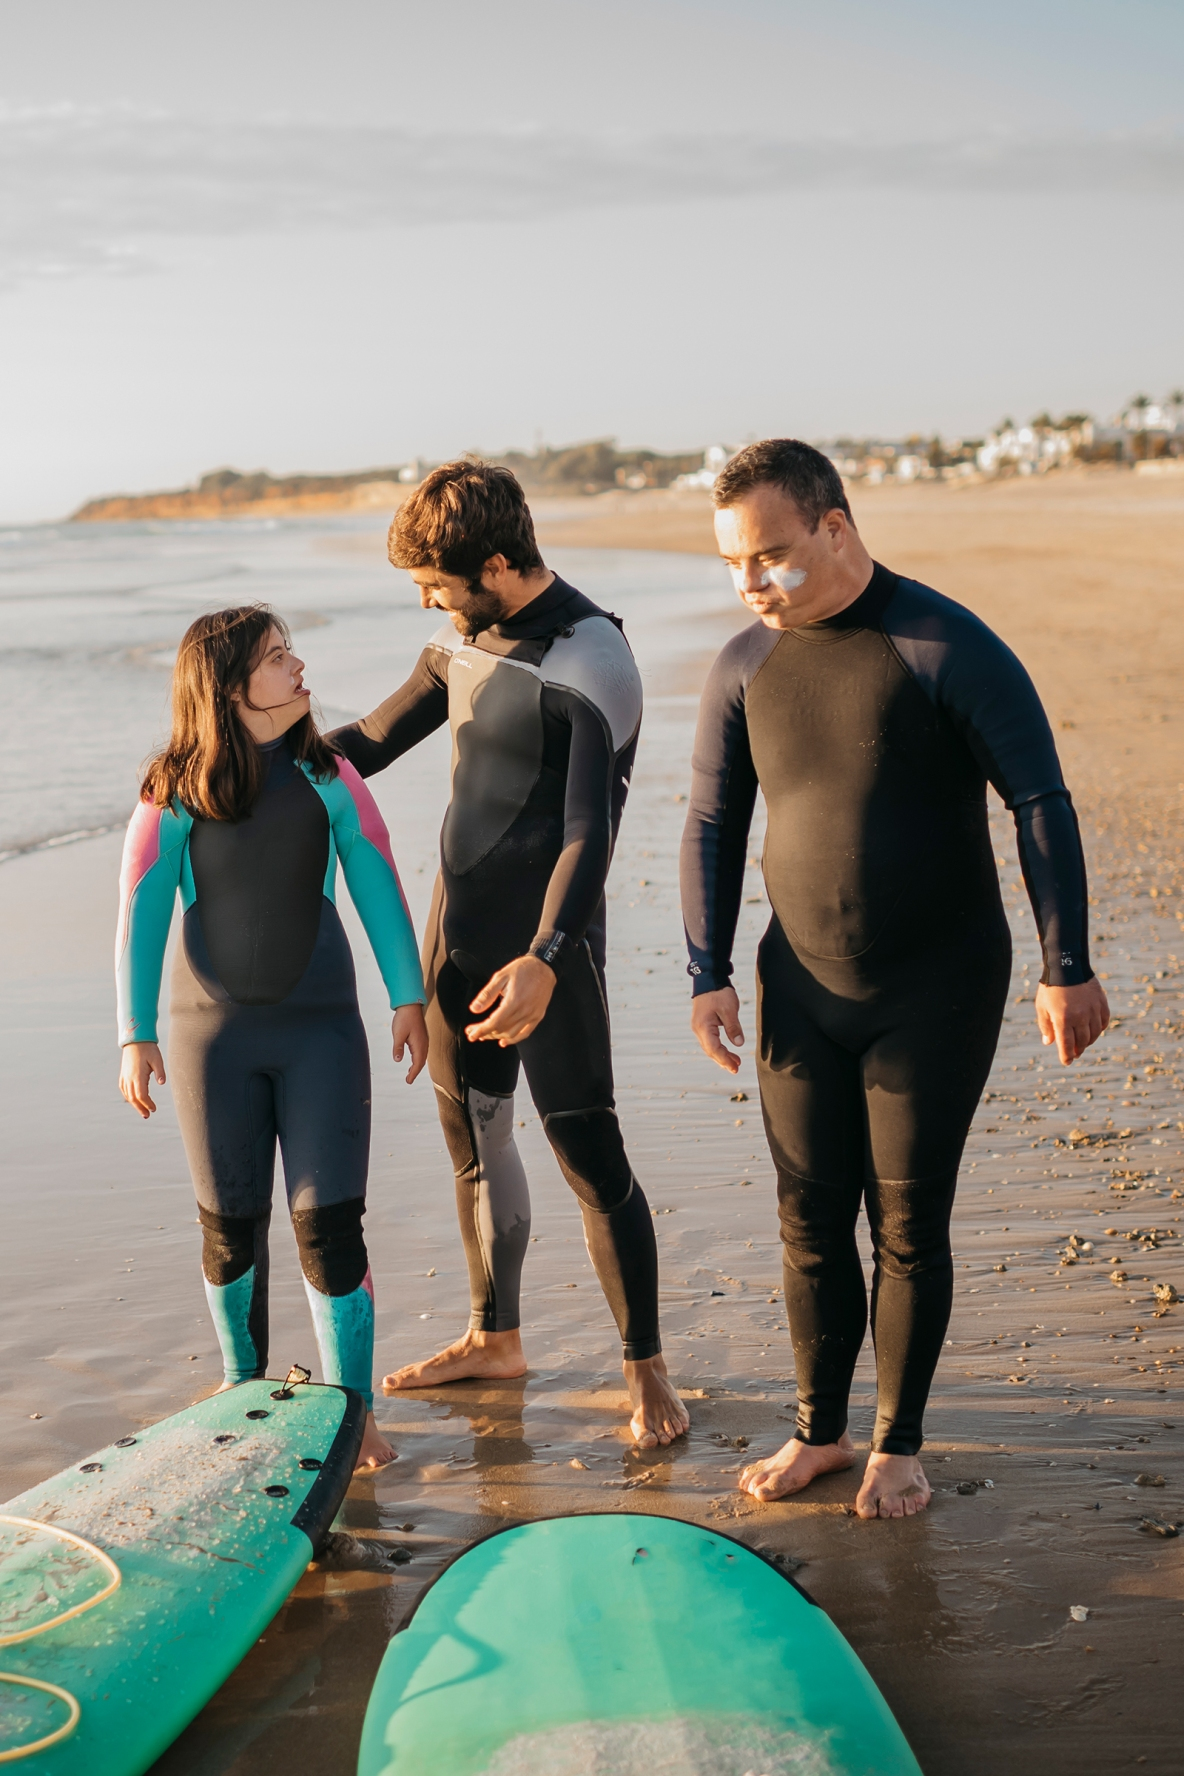 Three people participating in a Therapeutic Surfing lesson in La Barrosa, Spain